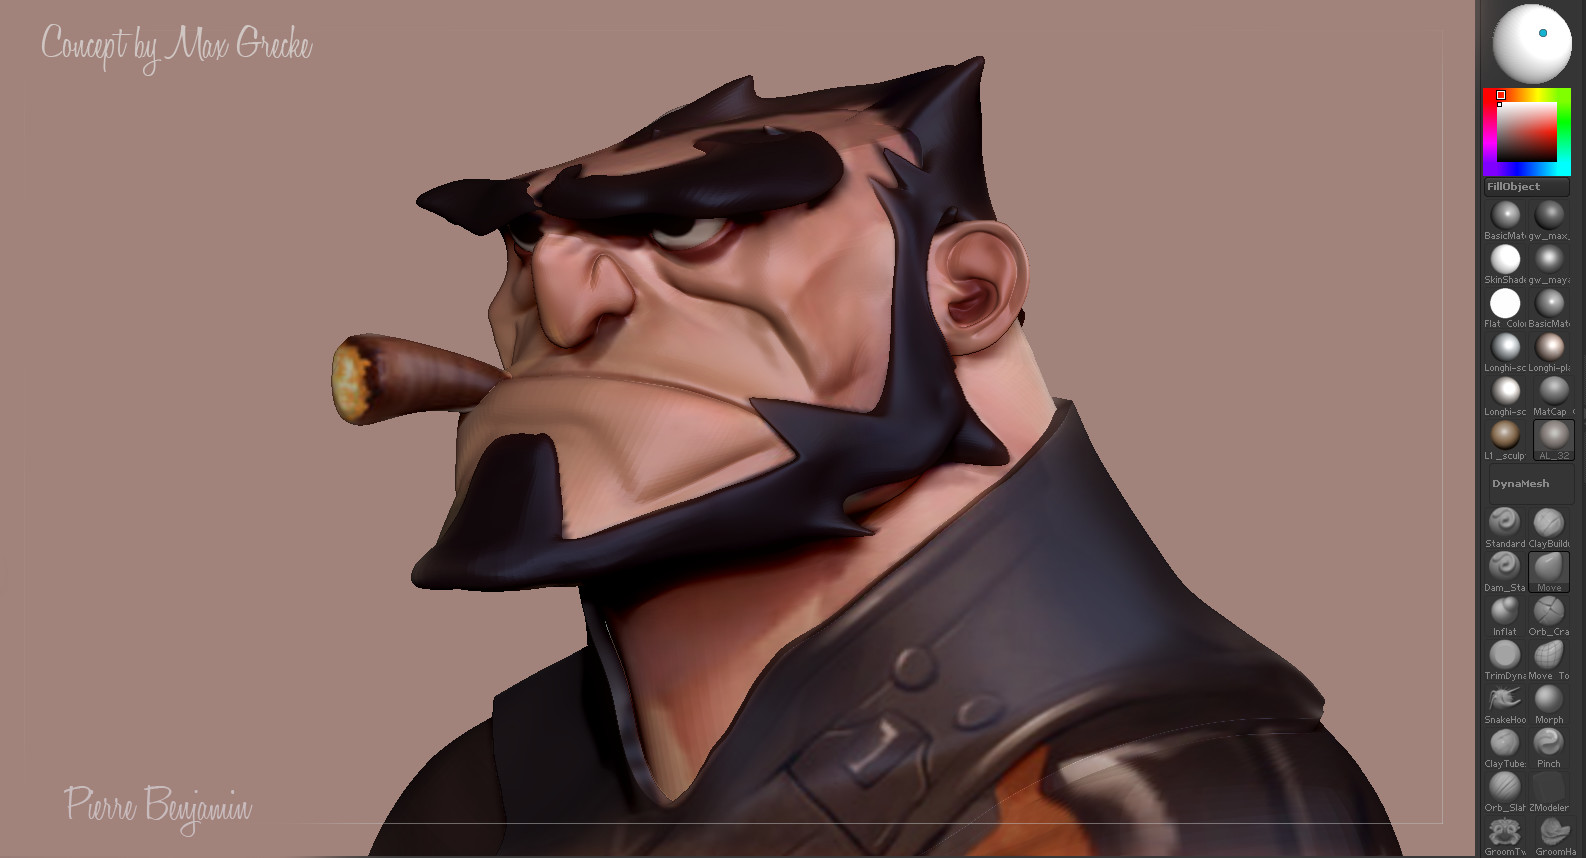 Wolverine speed sculpt , based on a 2D concept by Max Grecke WIP